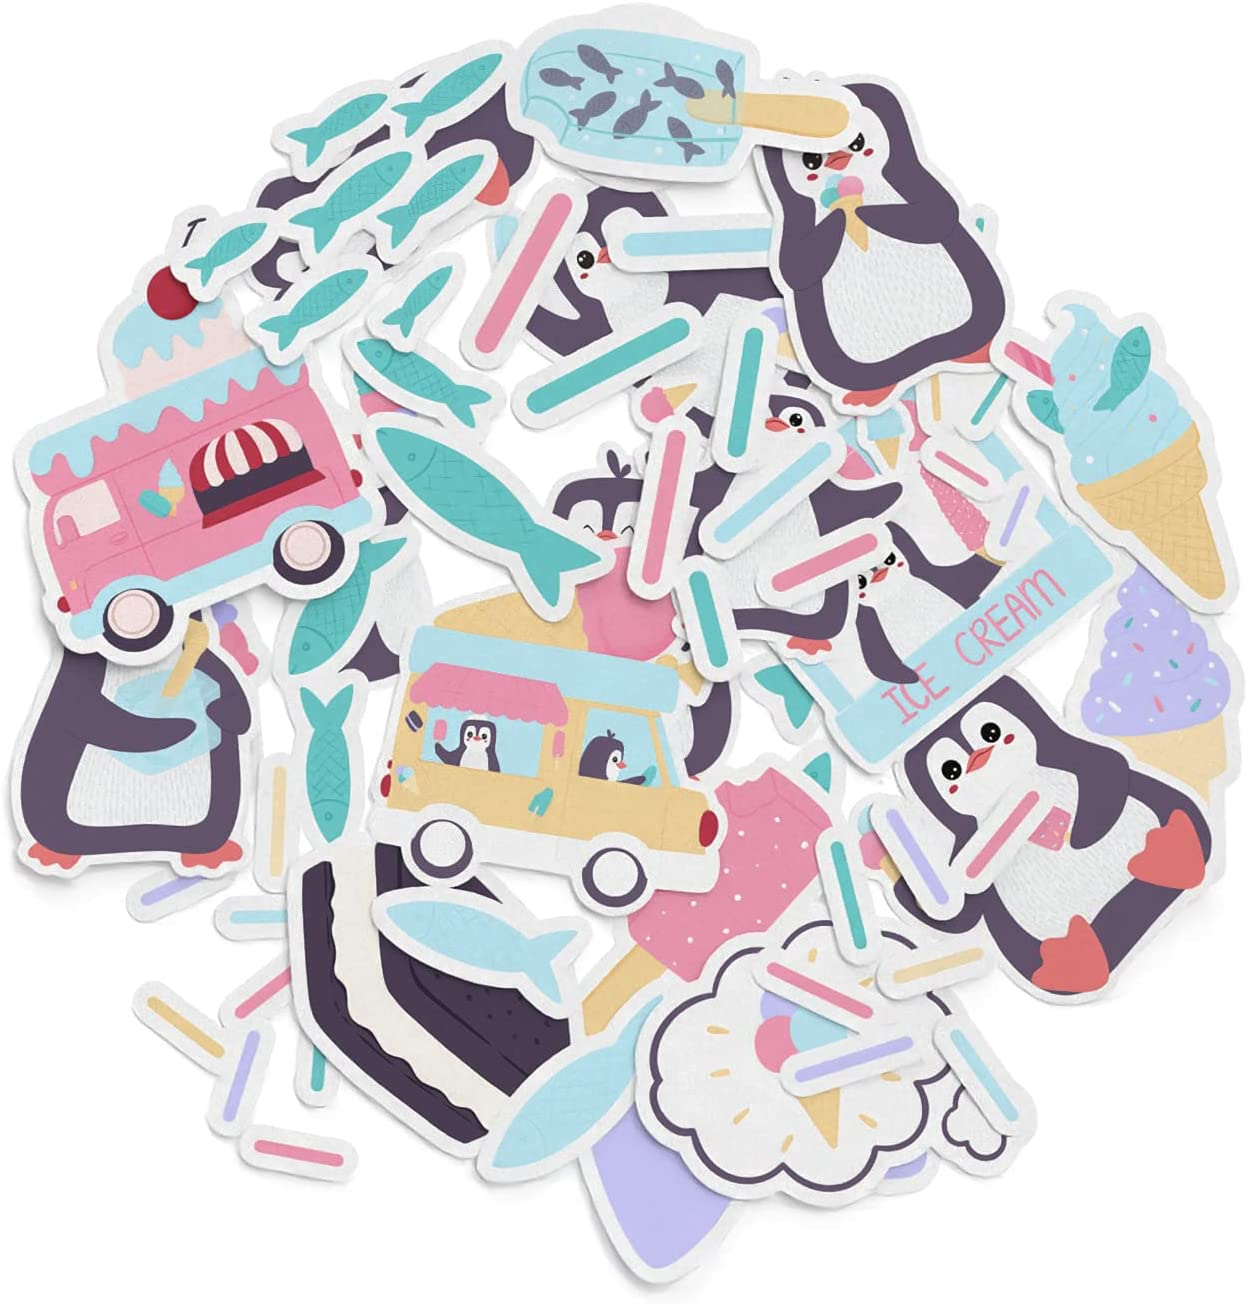 Mertak - 32 PCS - Sticker Pack for Laptop for Planner for Water Bottle Vinyl Sprinkles for Notebook Food Kawaii Decals Stationery for Truck Cute Penguin Set Ice-Cream Waterproof for Cooler